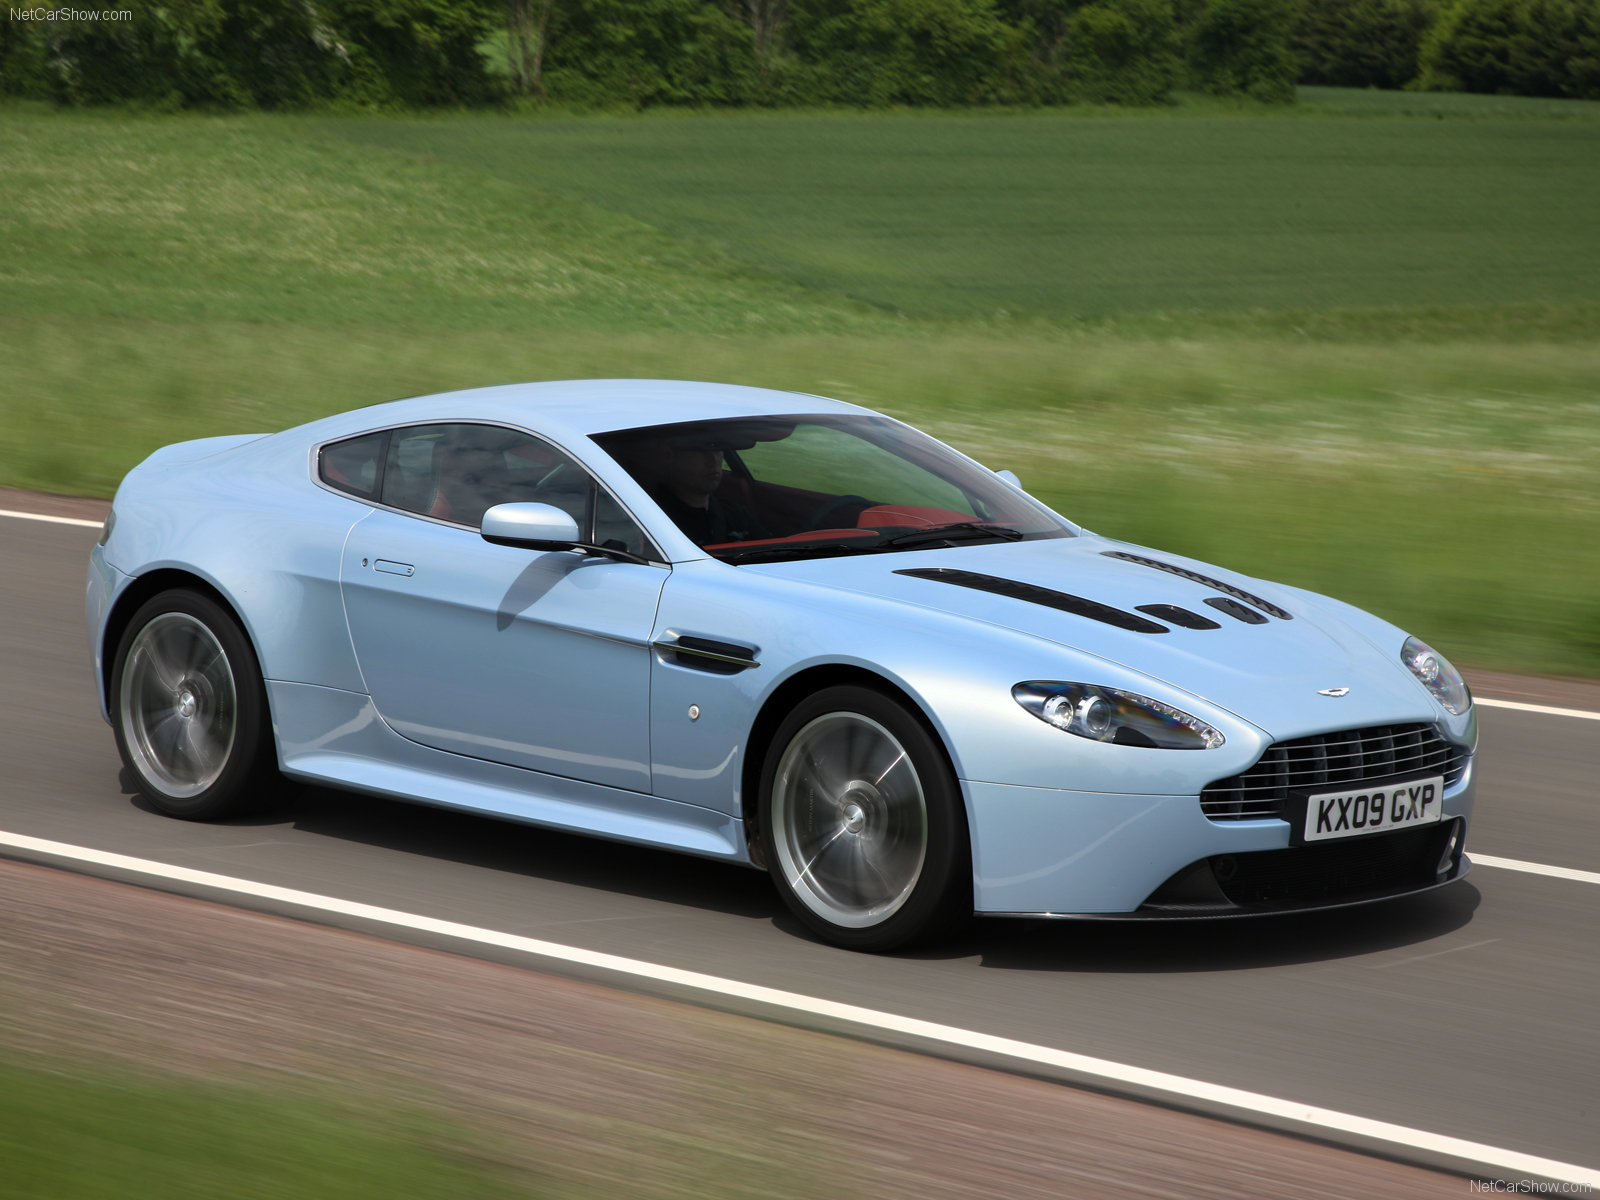 aston martin v12 vantage picture 64328 aston martin photo gallery. Black Bedroom Furniture Sets. Home Design Ideas